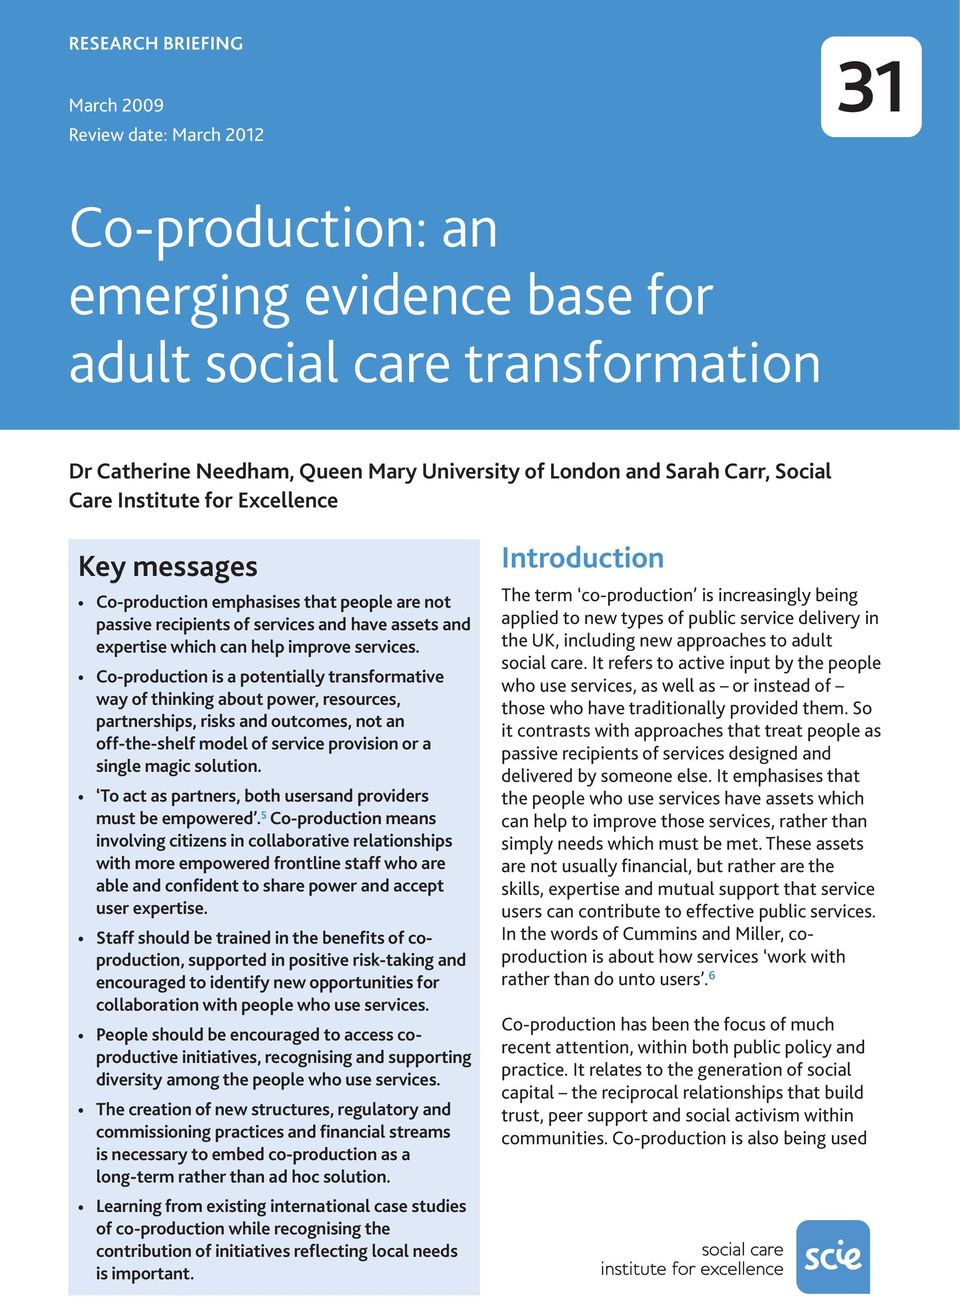 Co-production is a potentially transformative way of thinking about power, resources, partnerships, risks and outcomes, not an off-the-shelf model of service provision or a single magic solution.